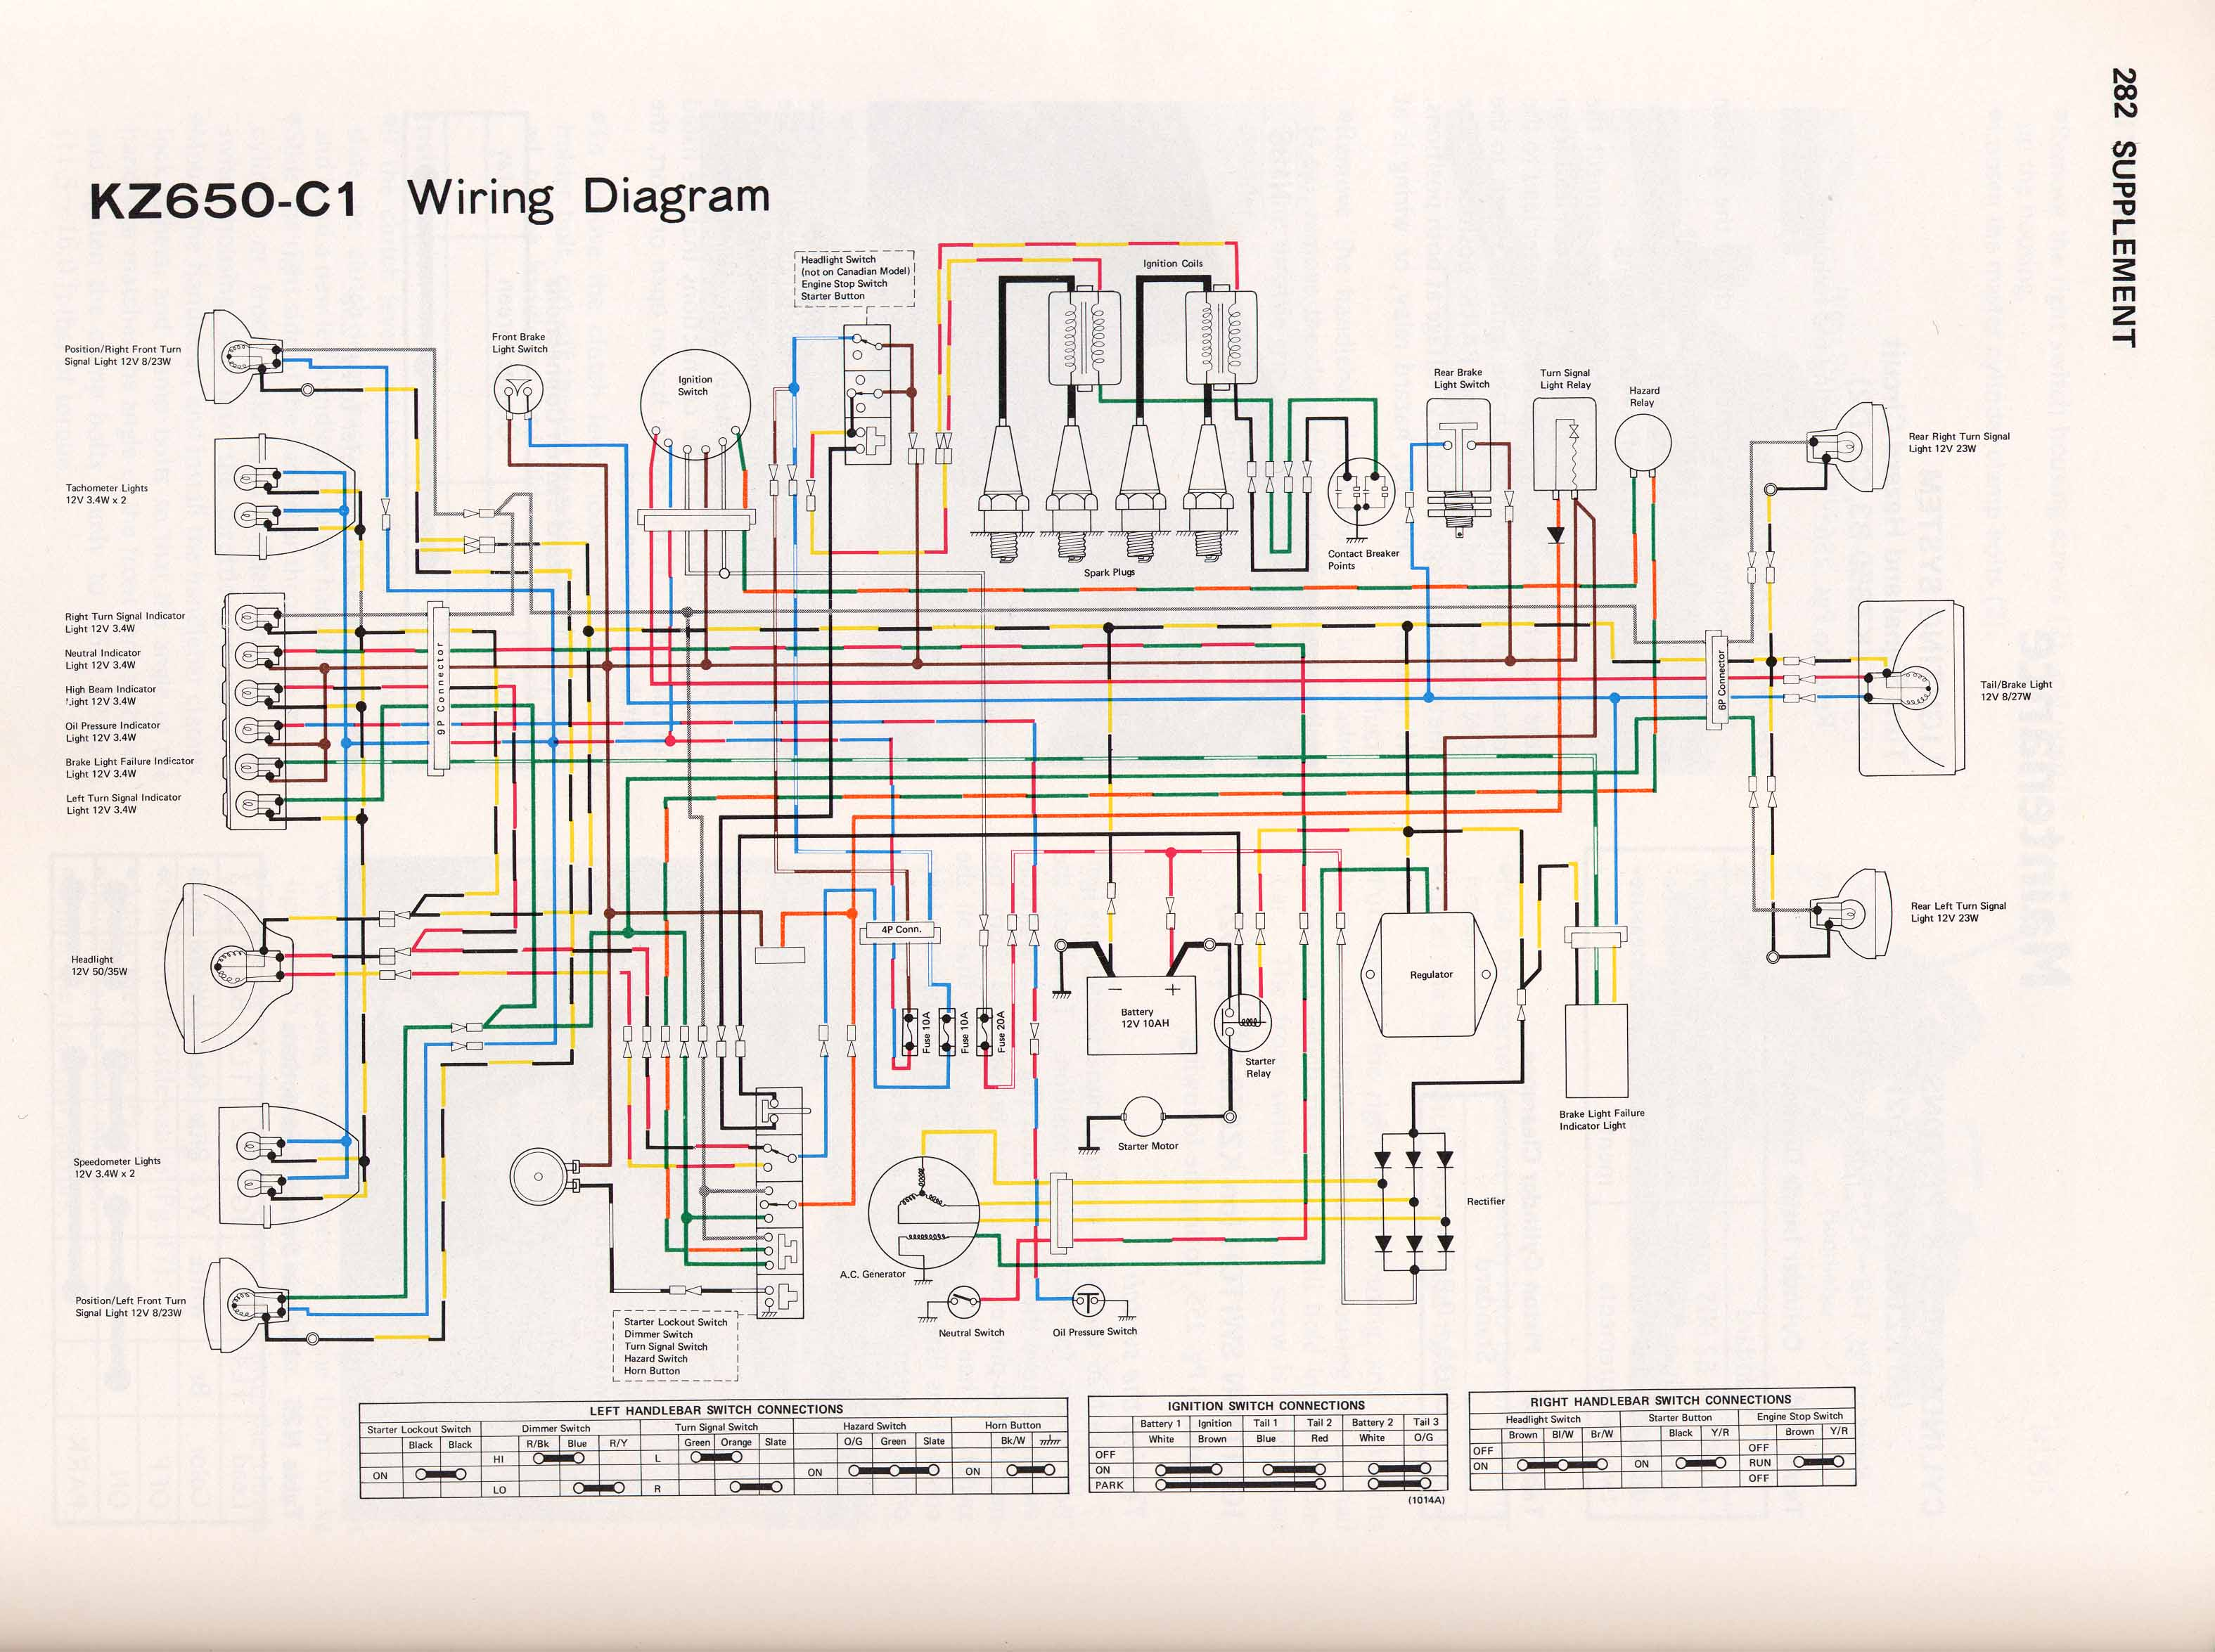 83 Yamaha Virago Wiring Diagram | New Wiring Resources 2019 on